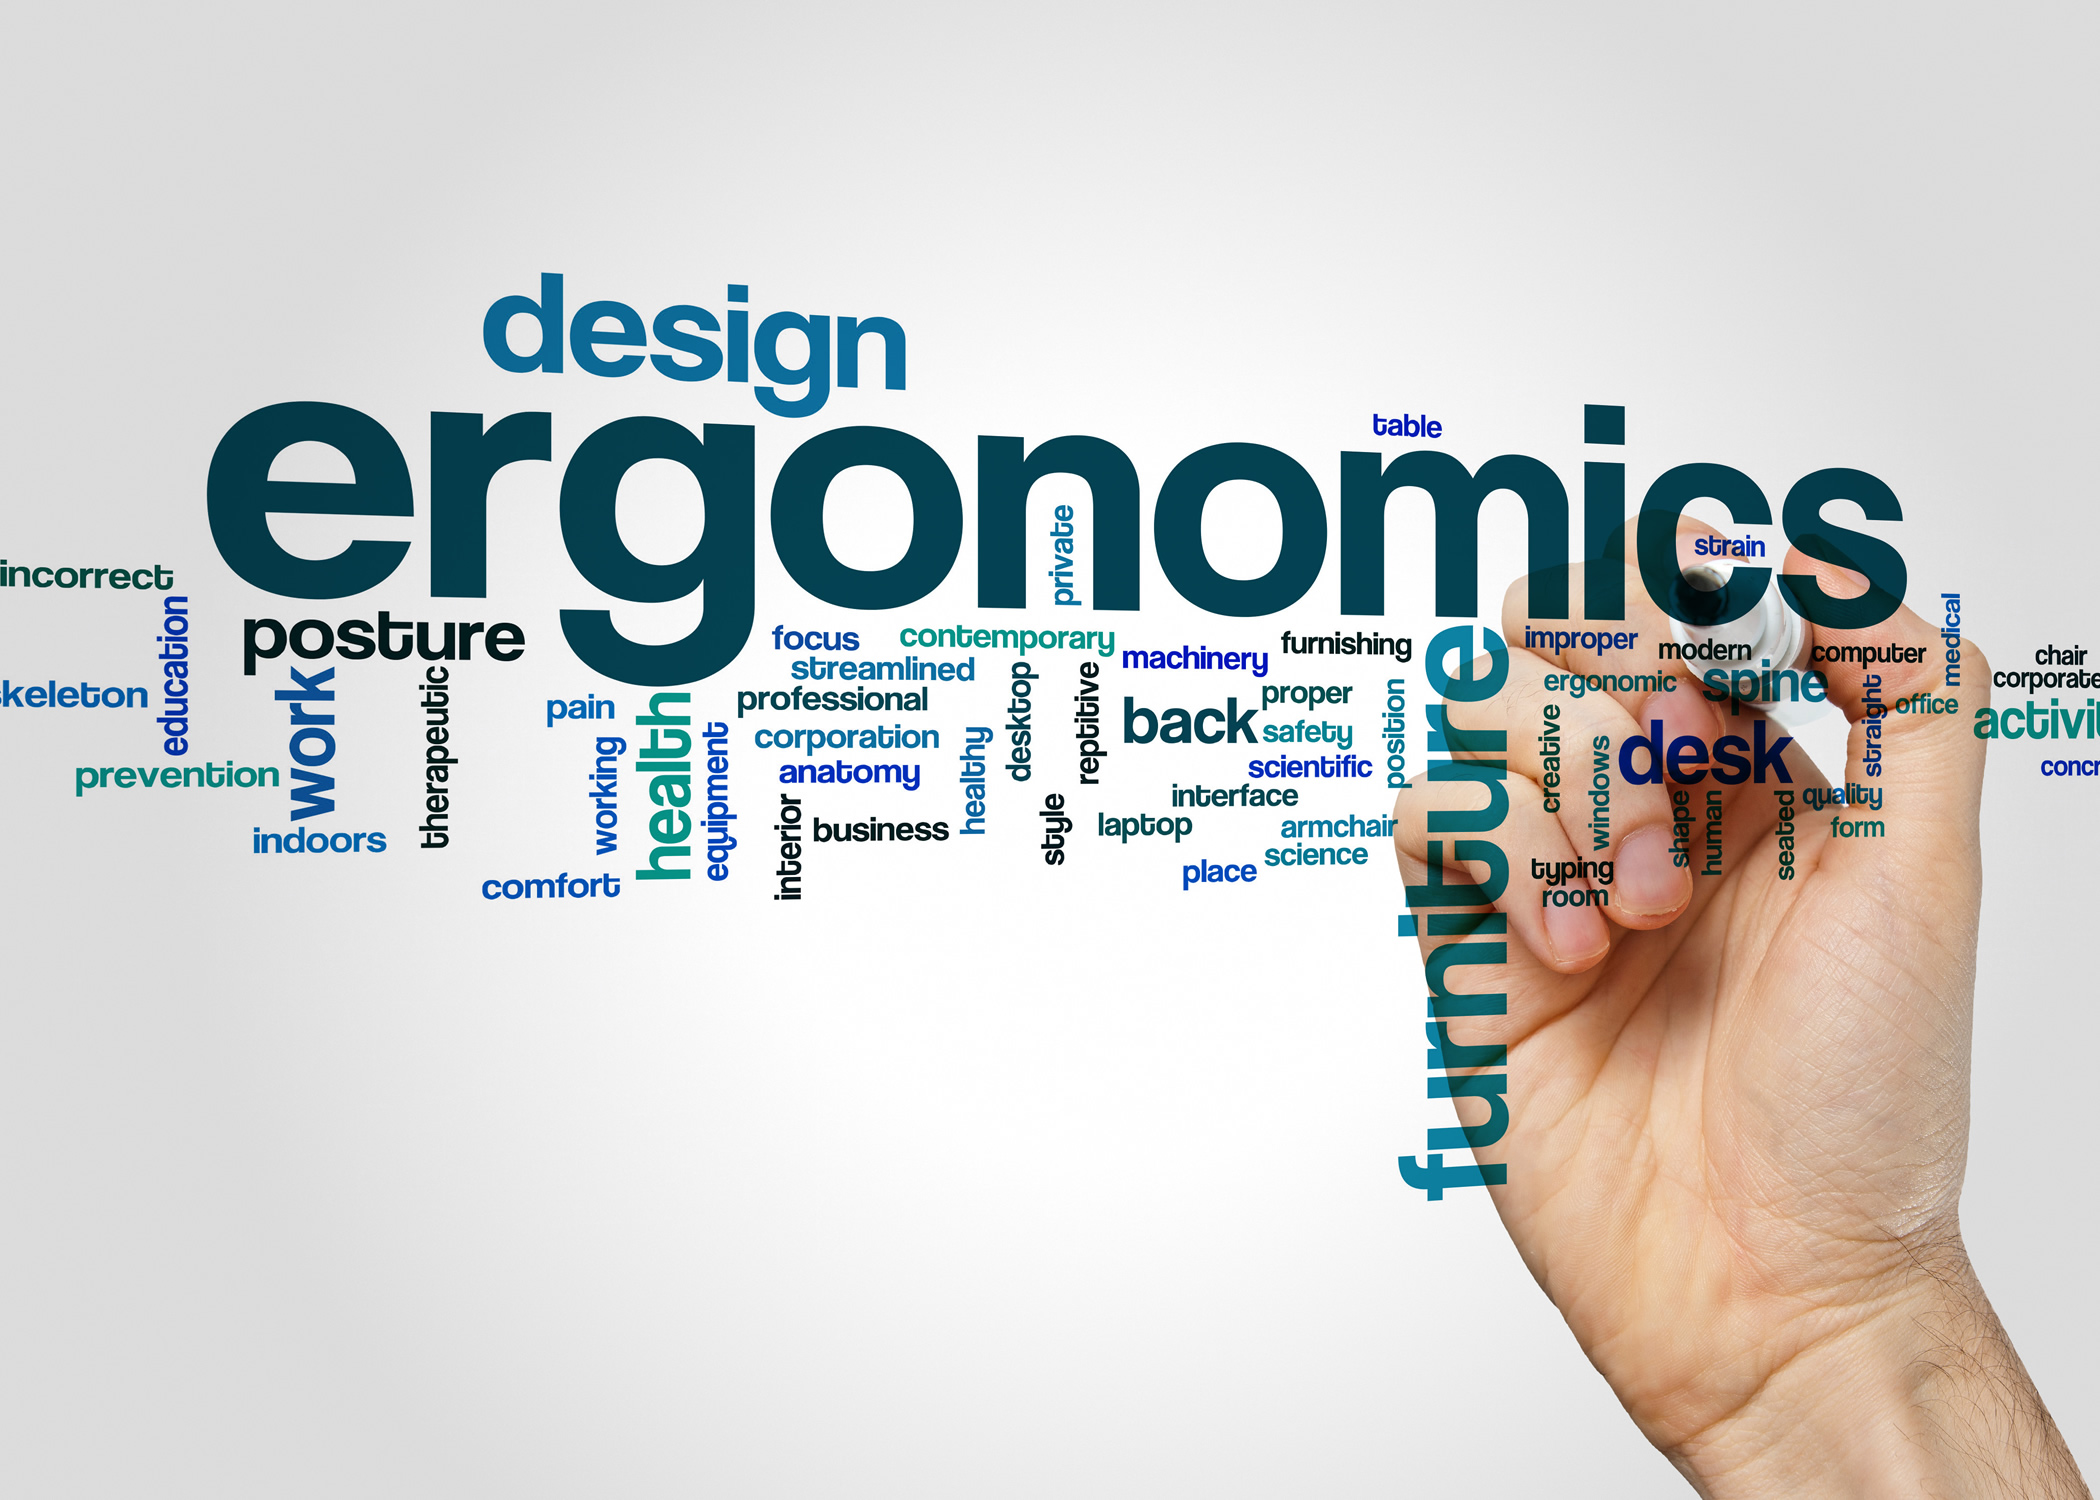 ERGONOMICS AND FACILITIES PLANNING FOR THE HOSPITALITY INDUSTRY